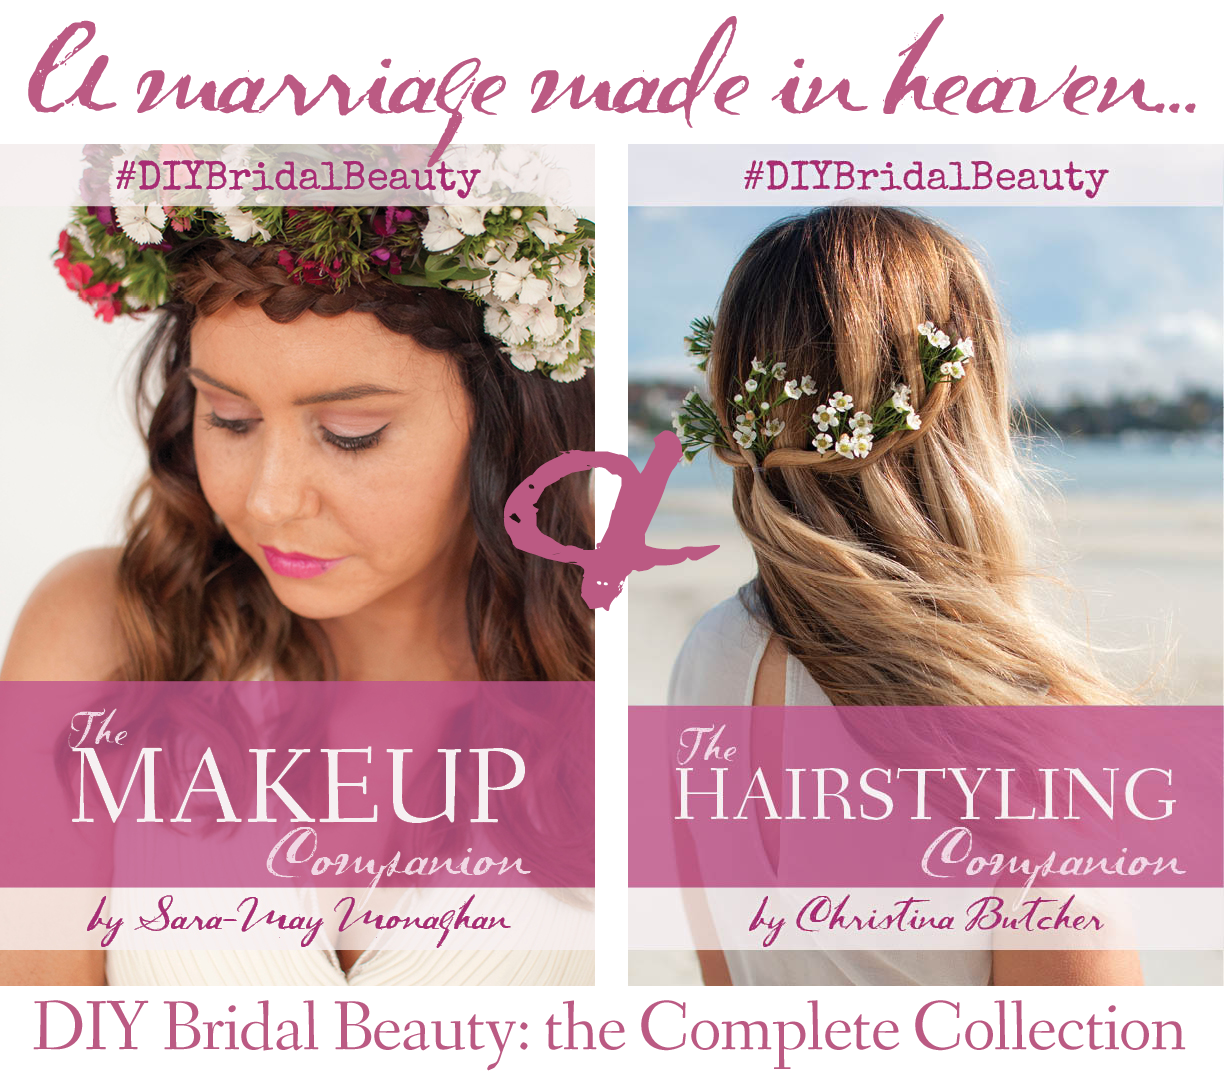 DIY Bridal Beauty book covers